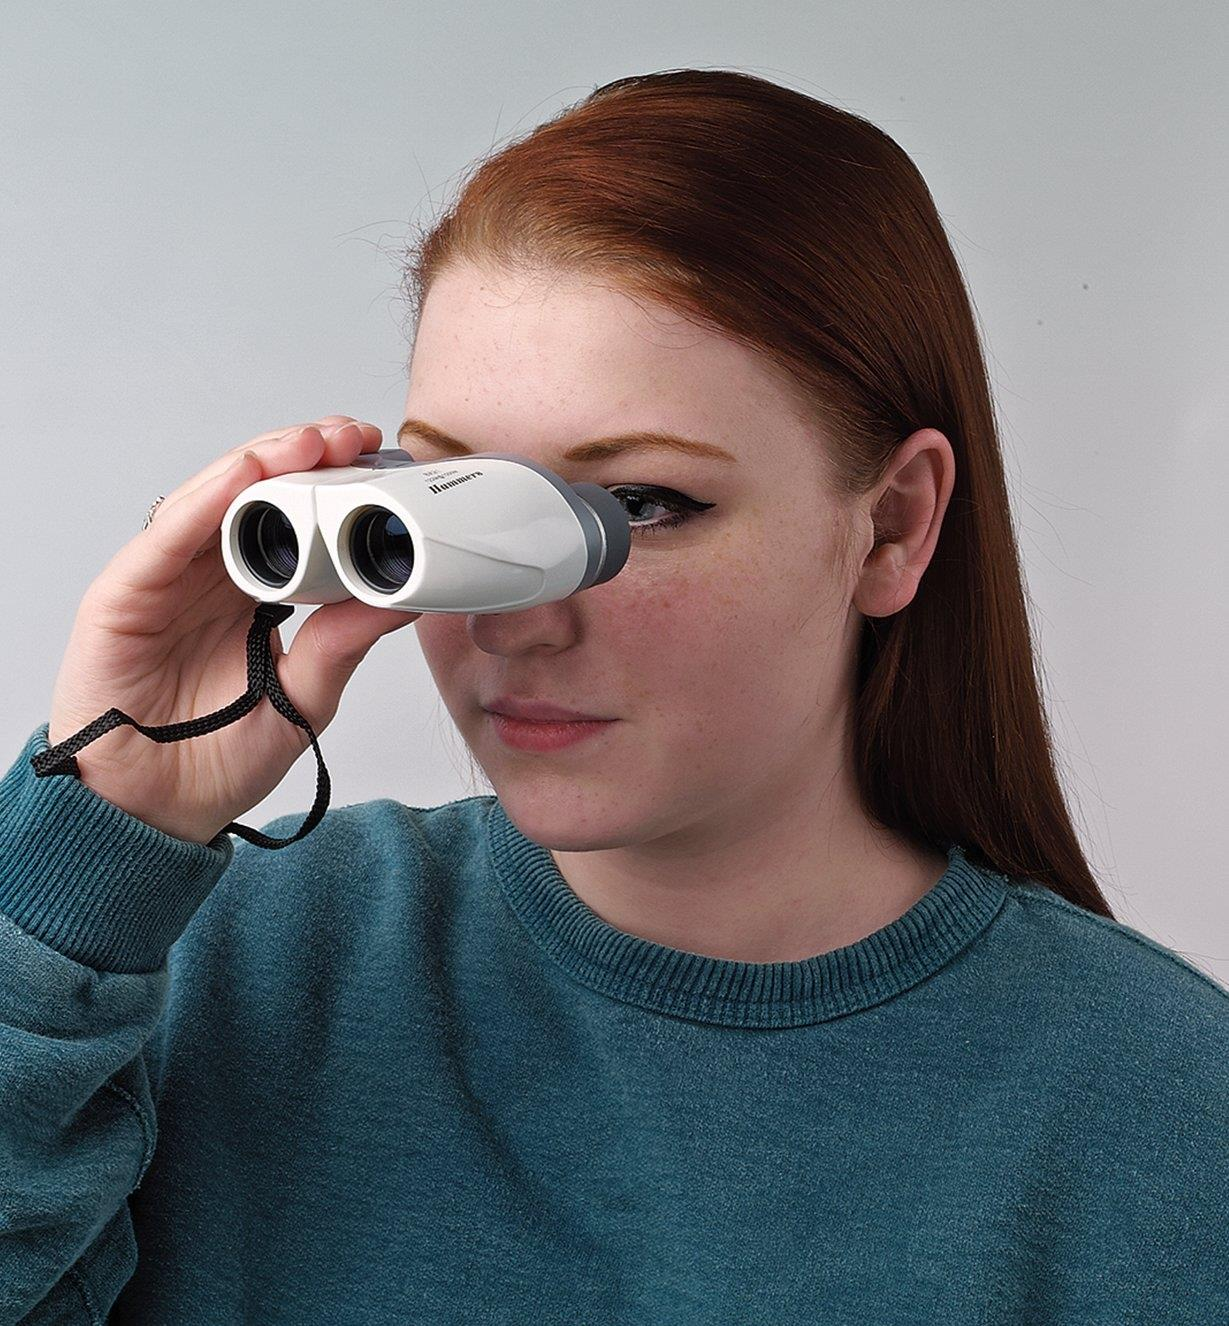 A young woman holds the Lightweight Compact Binoculars up to her eyes